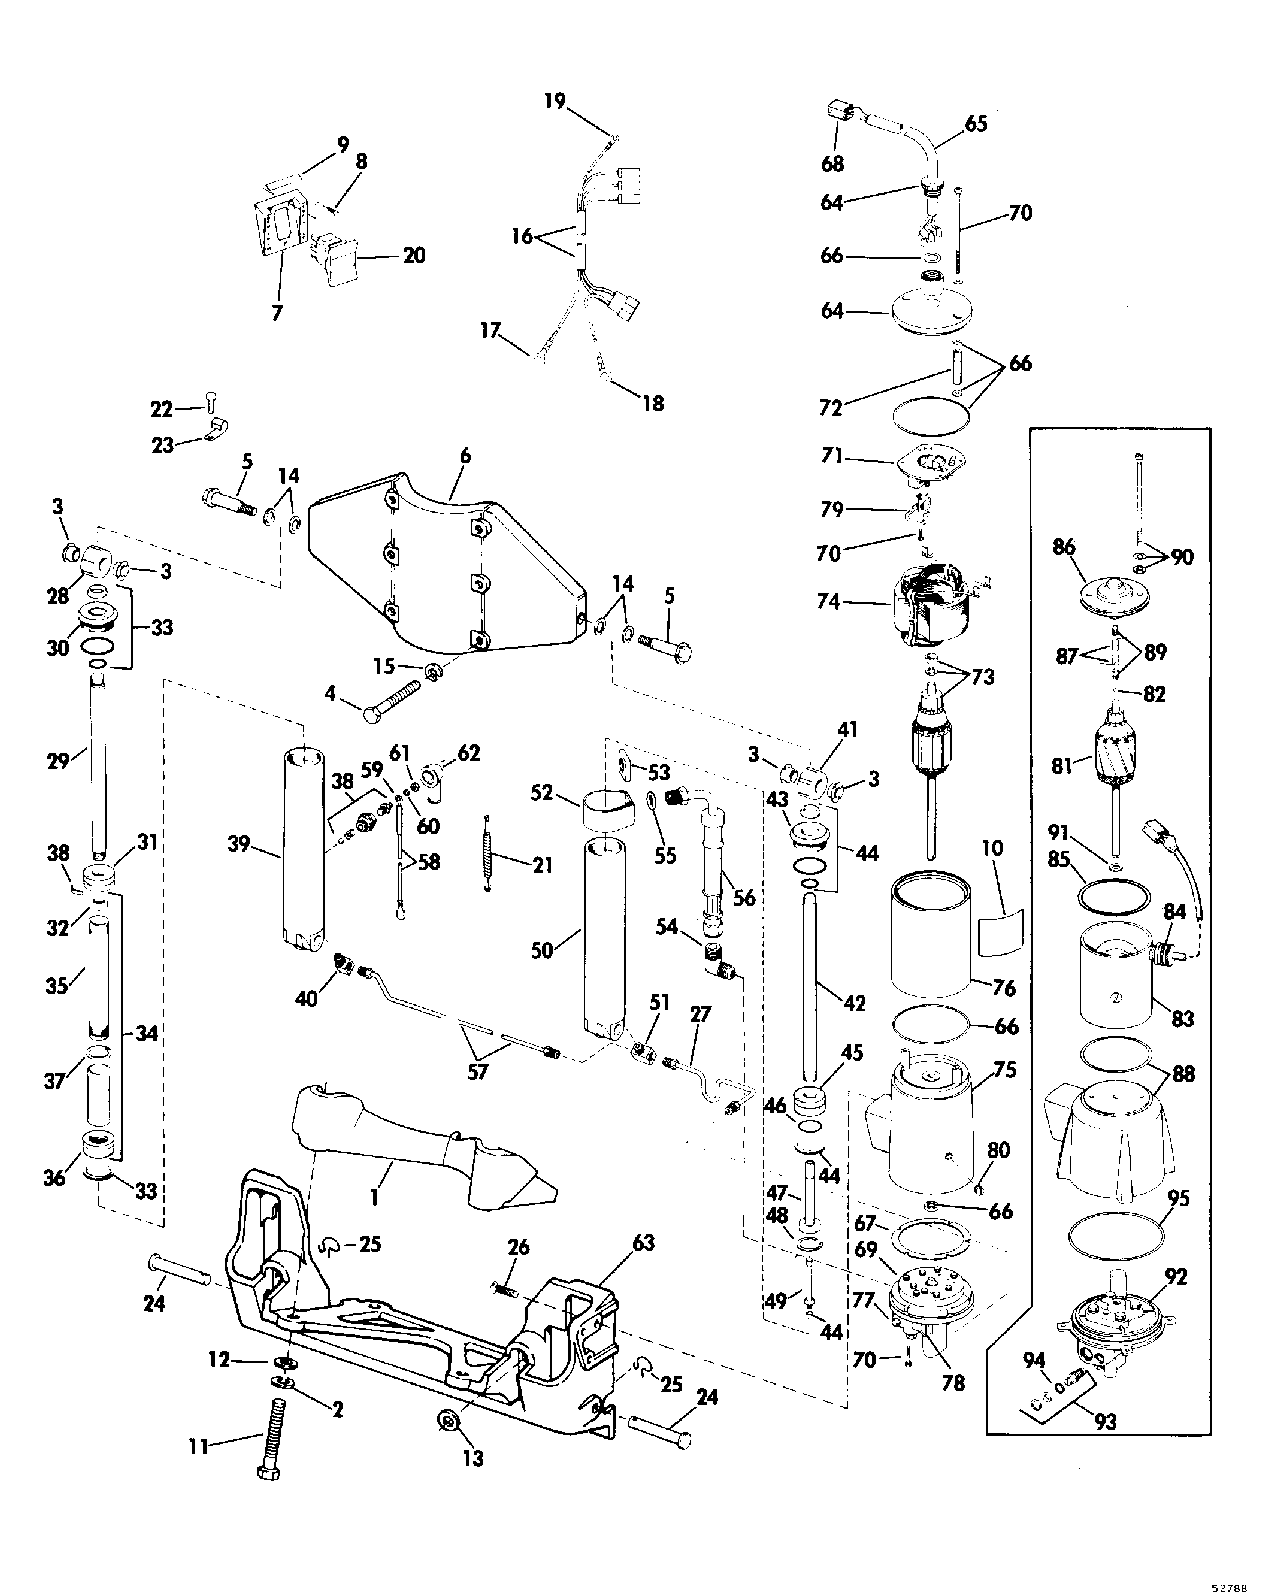 35868?resize\\\\\\\\\\\\\\\\\\\\\\\=665%2C827 ignition wiring diagram mercury 50 bigfoot wiring diagrams bigfoot camper wiring diagram at readyjetset.co